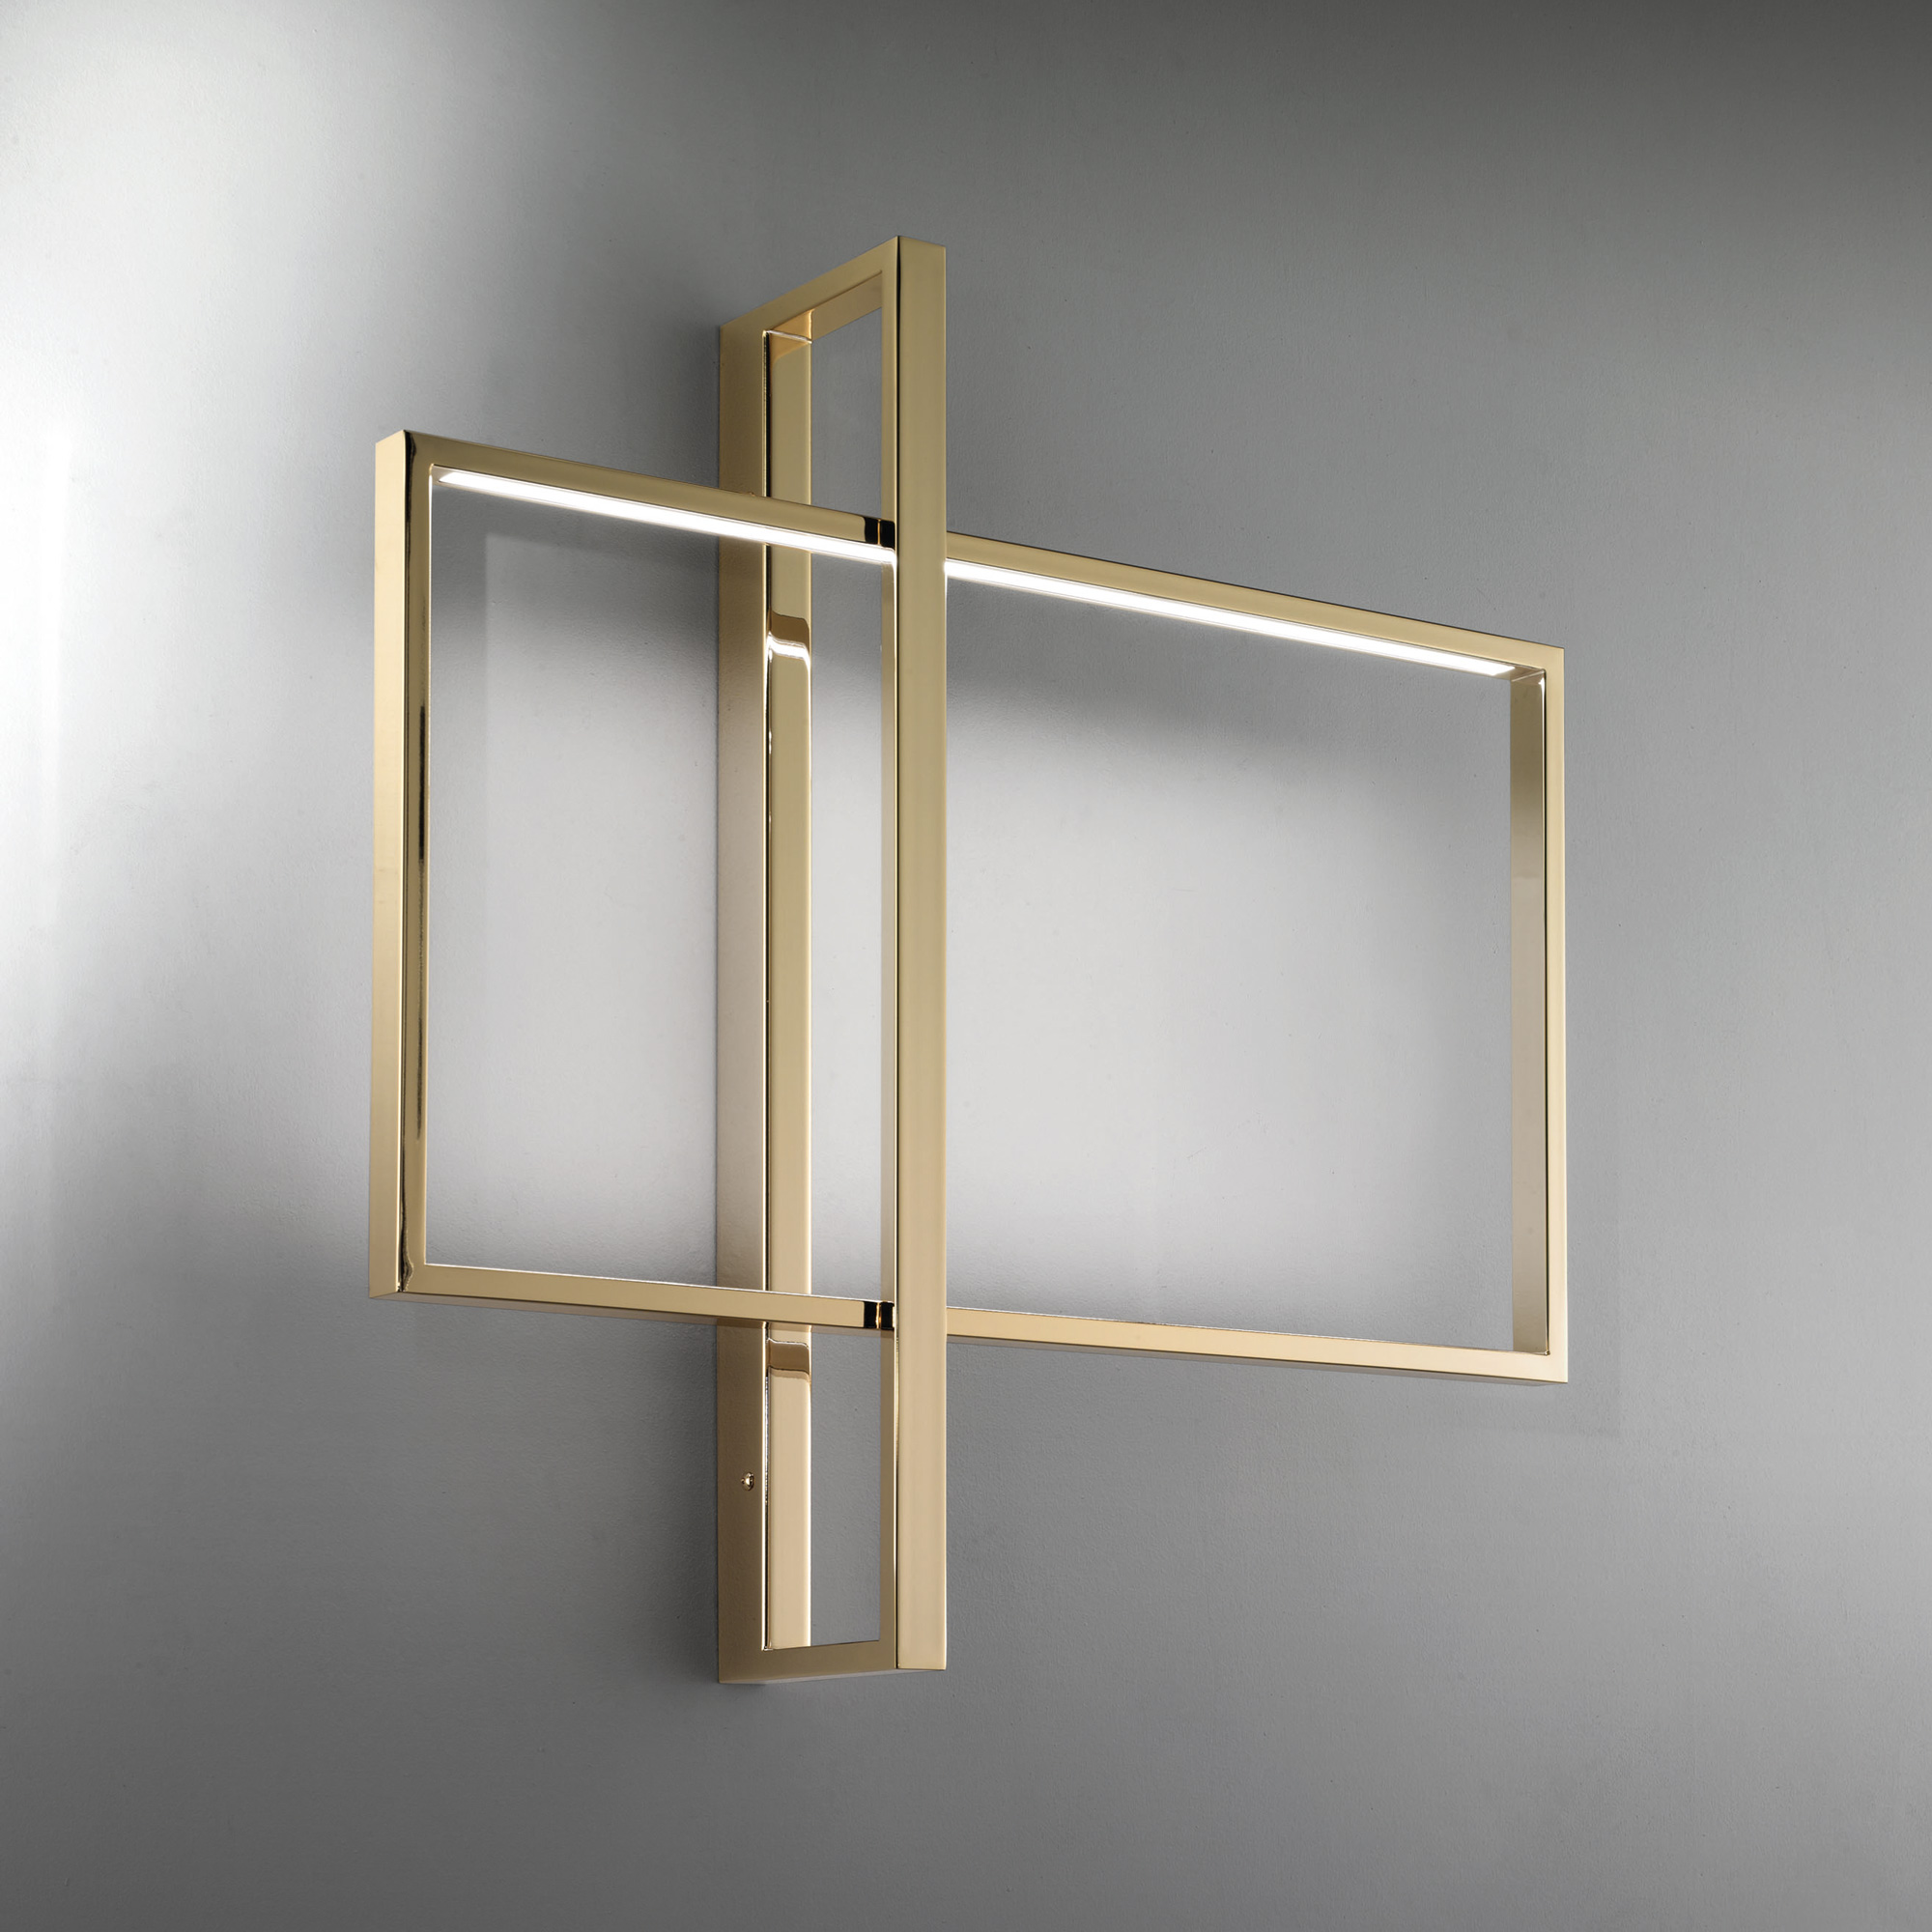 Mondrian Wall Luxury High End Italian Designer Mondrian Wall Lamp